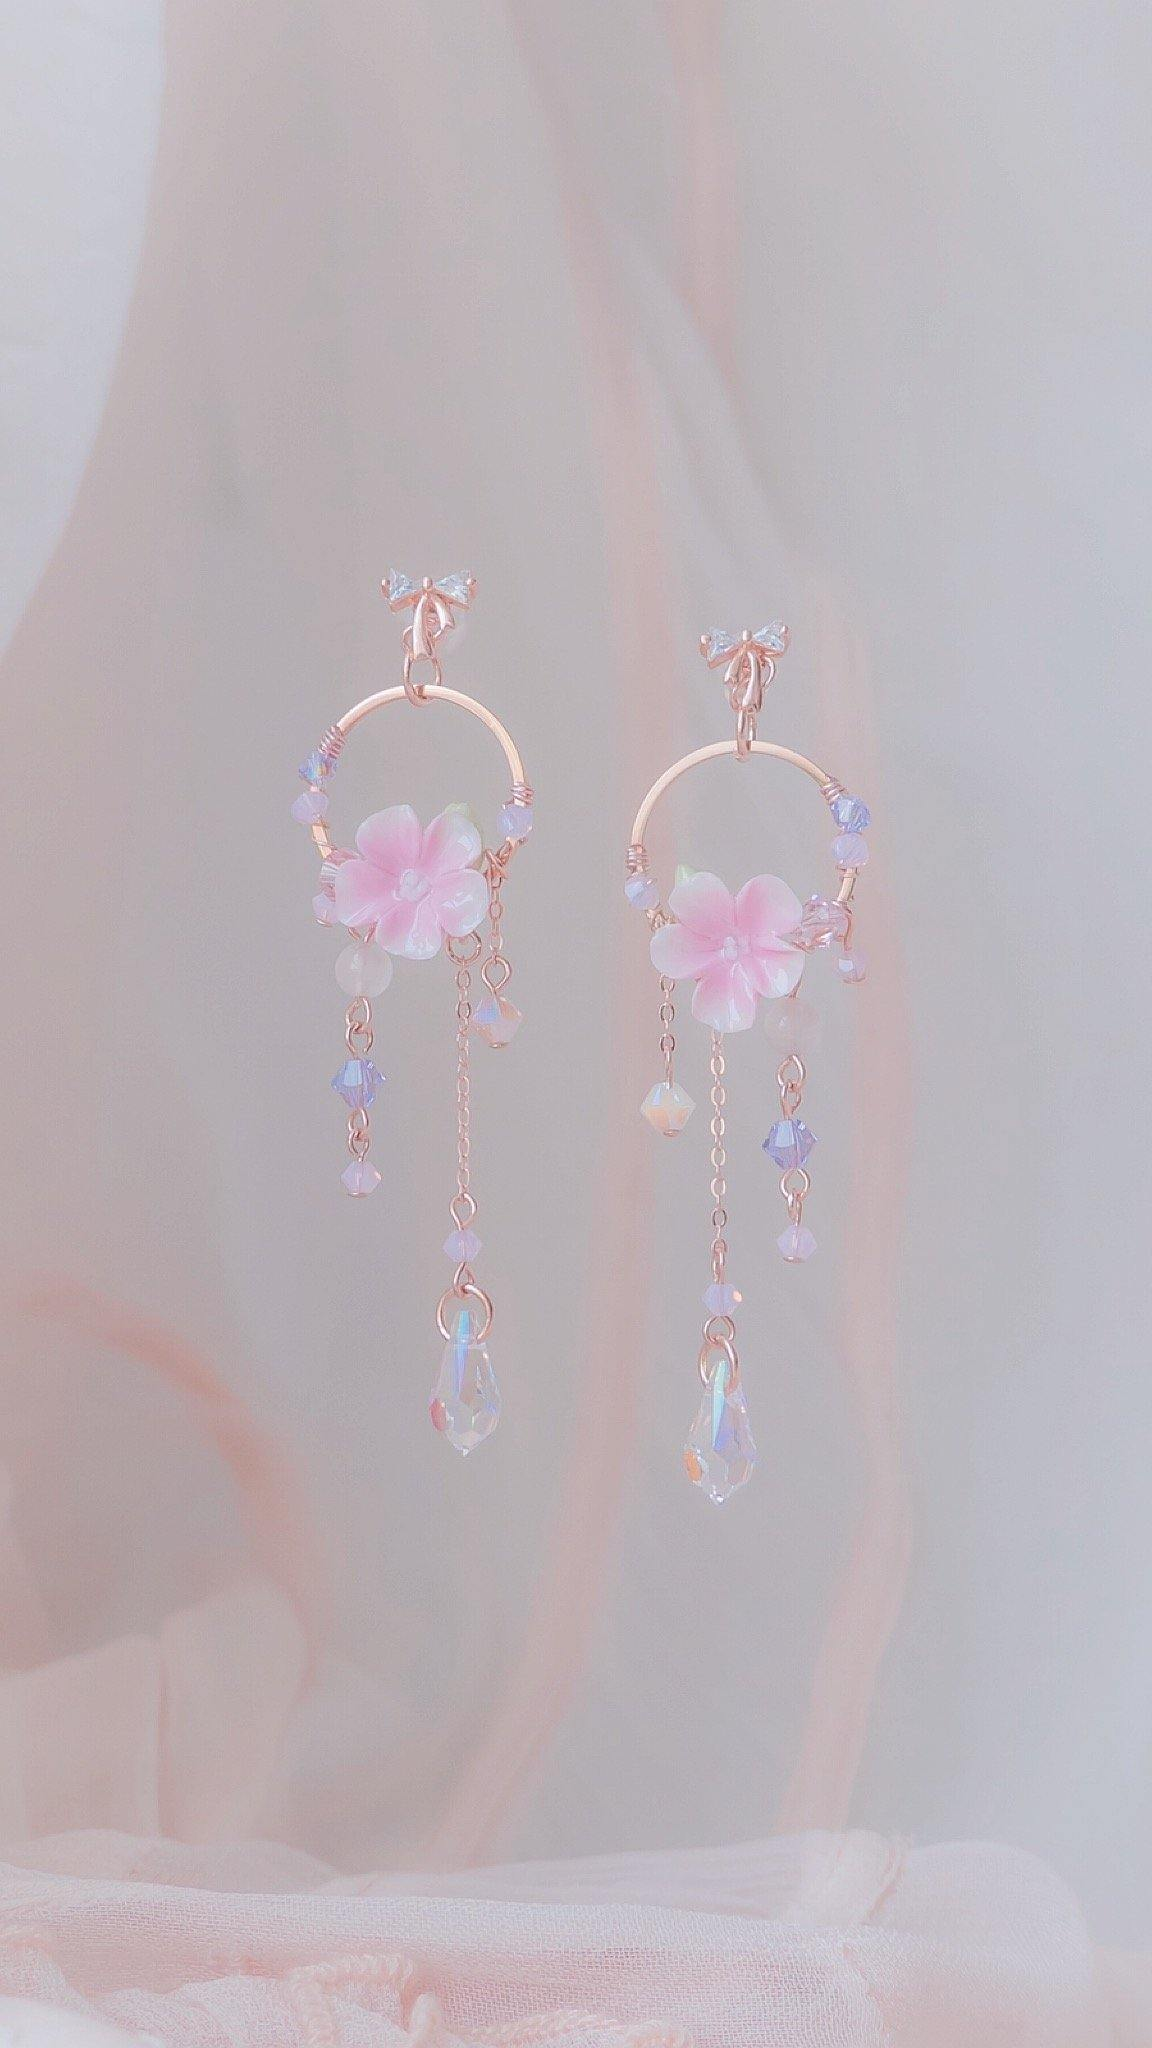 #8 ZODIAC Virgo Violet Bloom Dream Catcher Rosegold-plated 925 Silver Earrings - Pamycarie Hong Kong